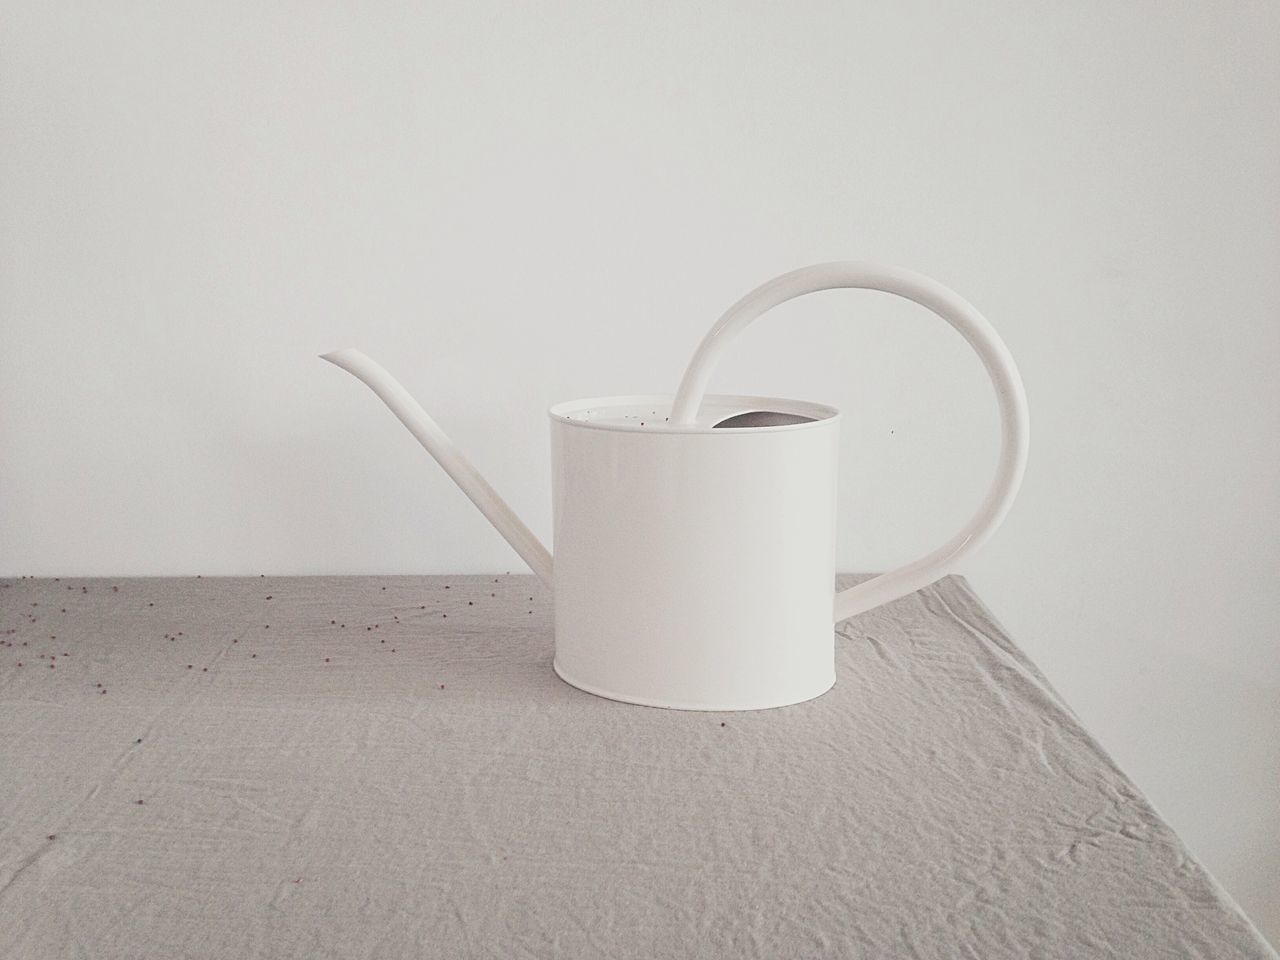 Watering can on table against wall